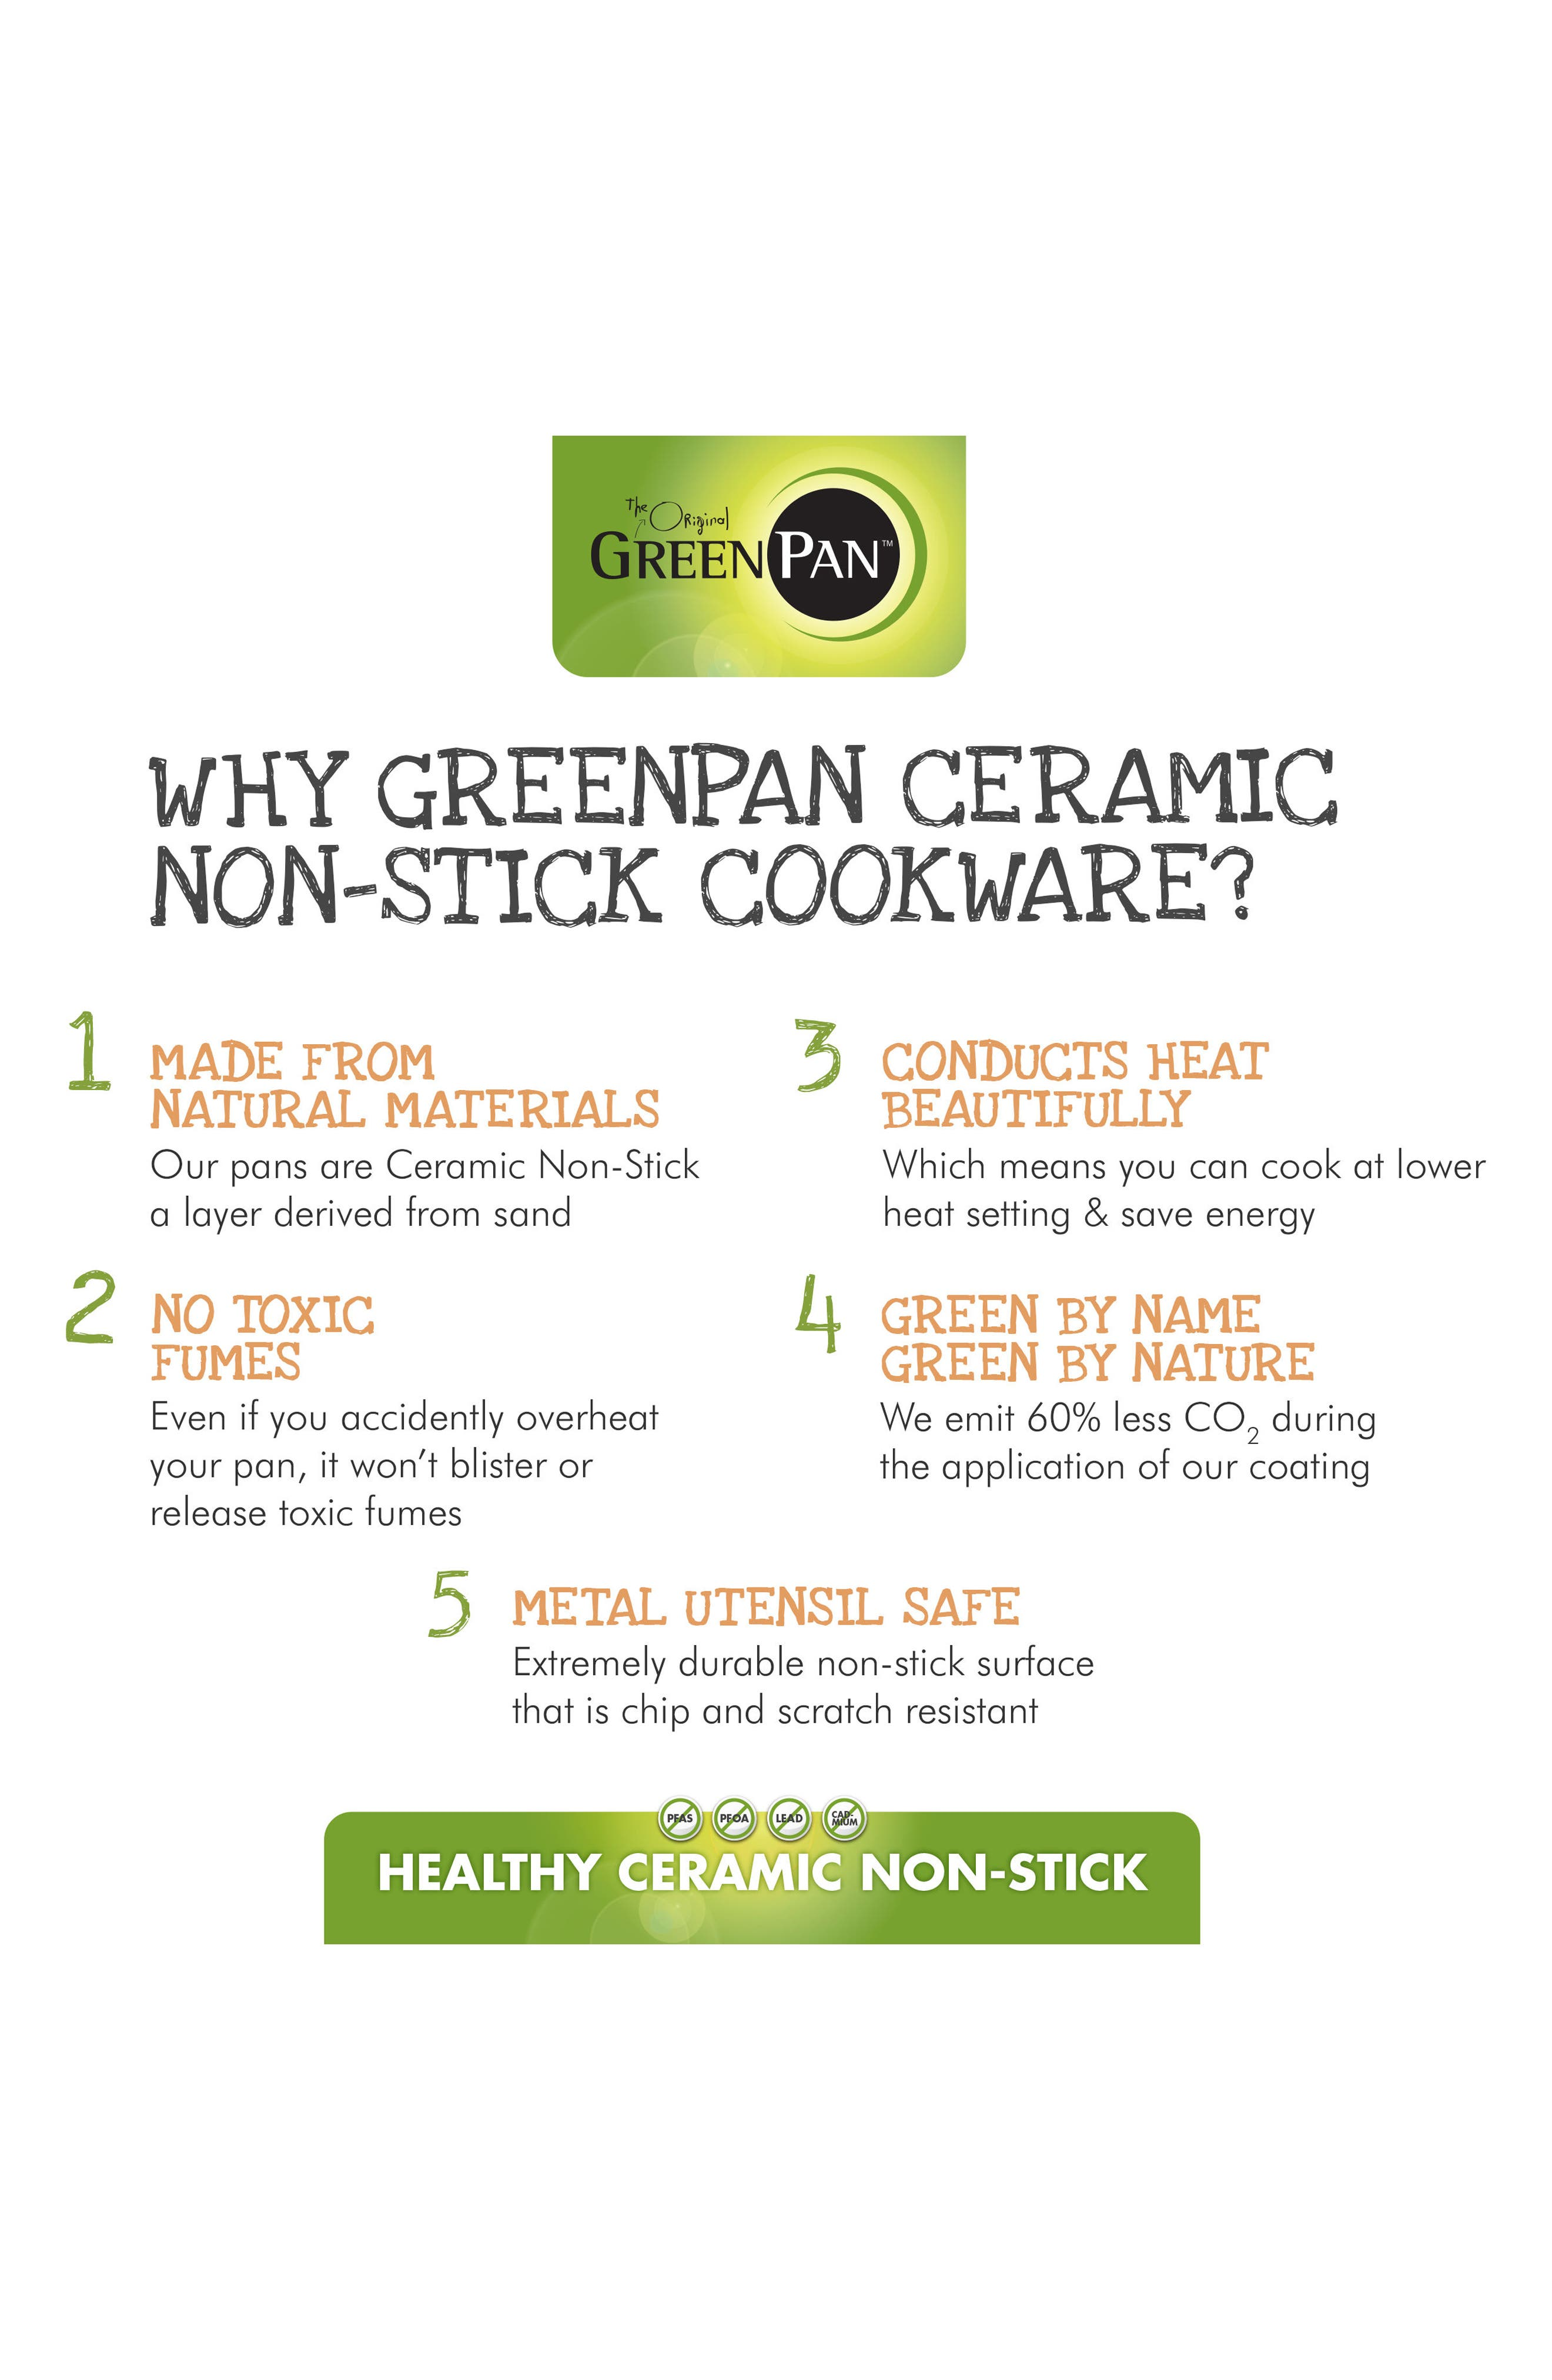 GREENPAN, Venice Pro 12-Inch Multilayer Stainless Steel Ceramic Nonstick Sauté Pan with Glass Lid, Alternate thumbnail 2, color, STAINLESS STEEL